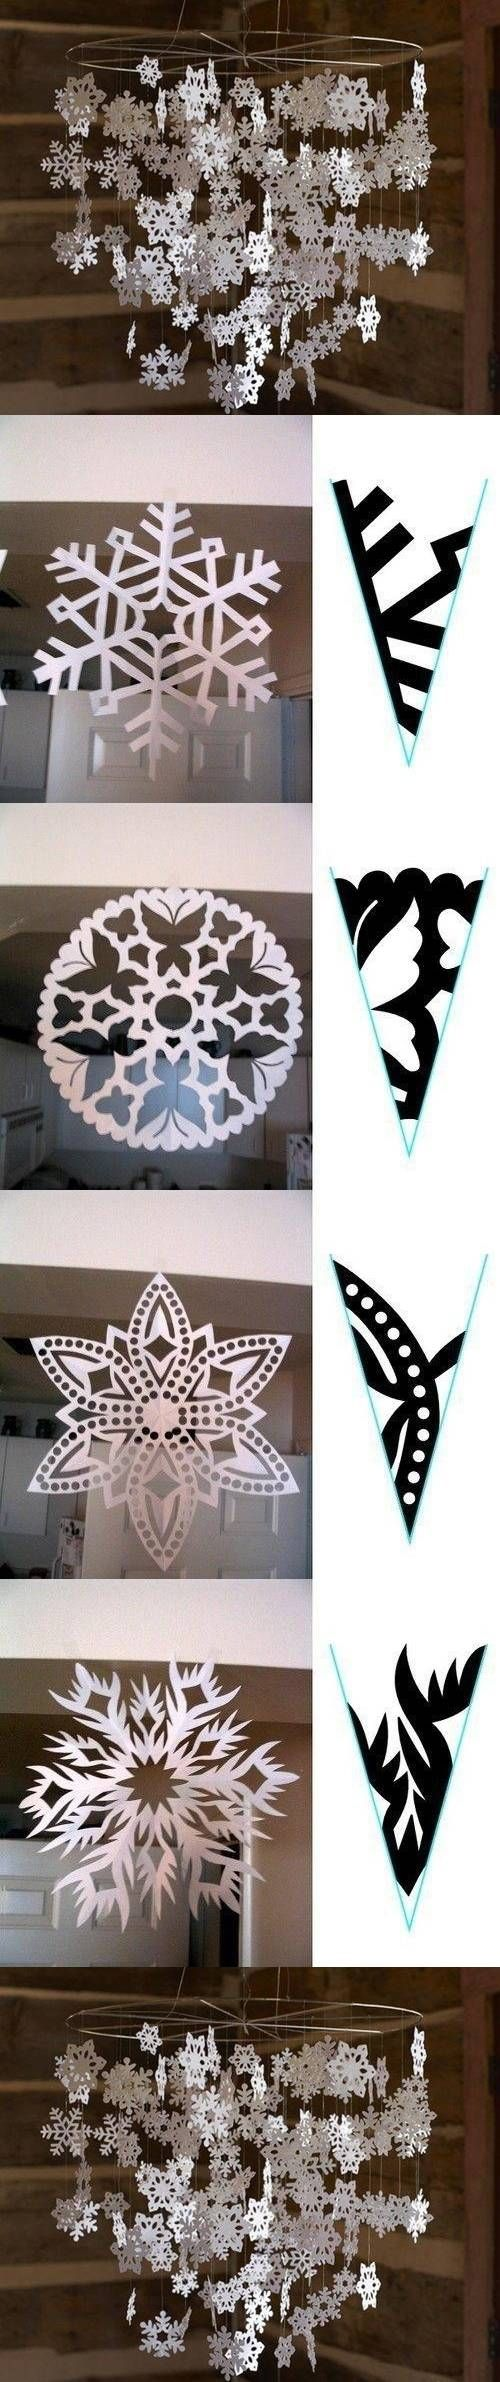 DIY Winter Paper Mobile diy craft craft decorations how to tutorial home crafts paper crafts winter crafts teen crafts